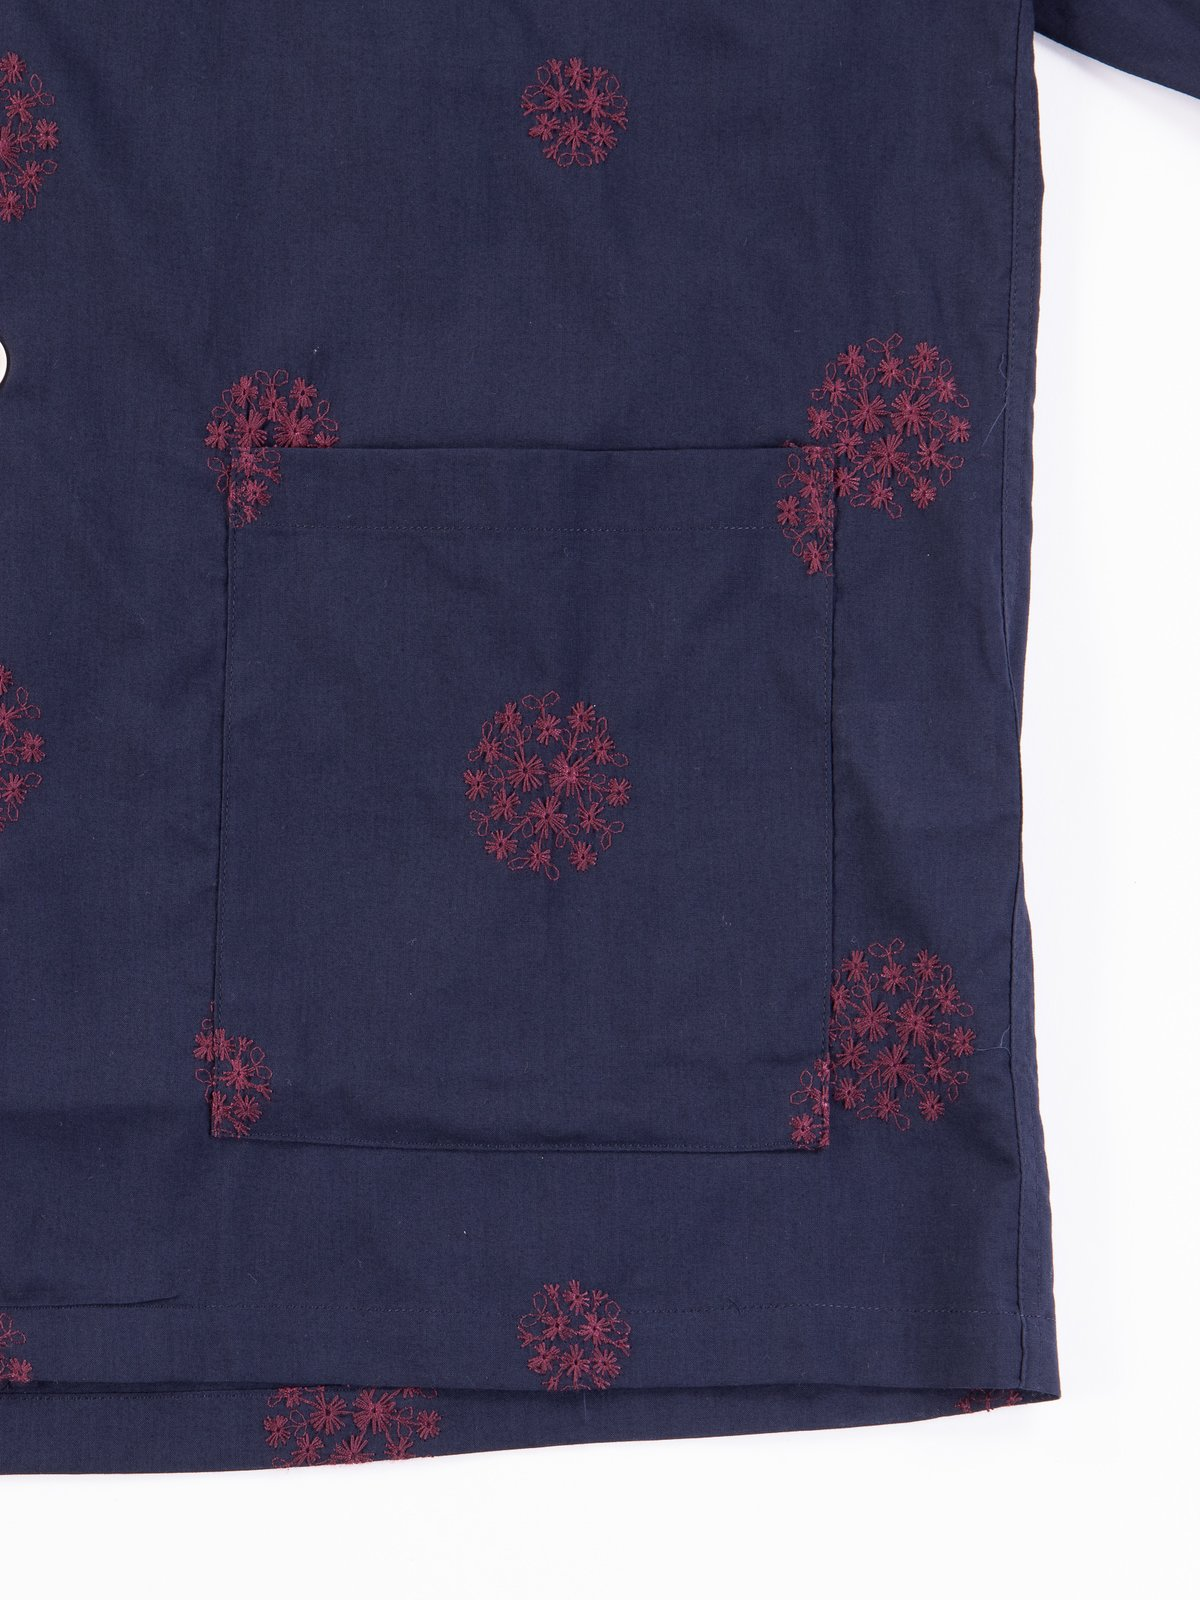 Navy Floral Dot Embroidered Cabana Shirt - Image 3